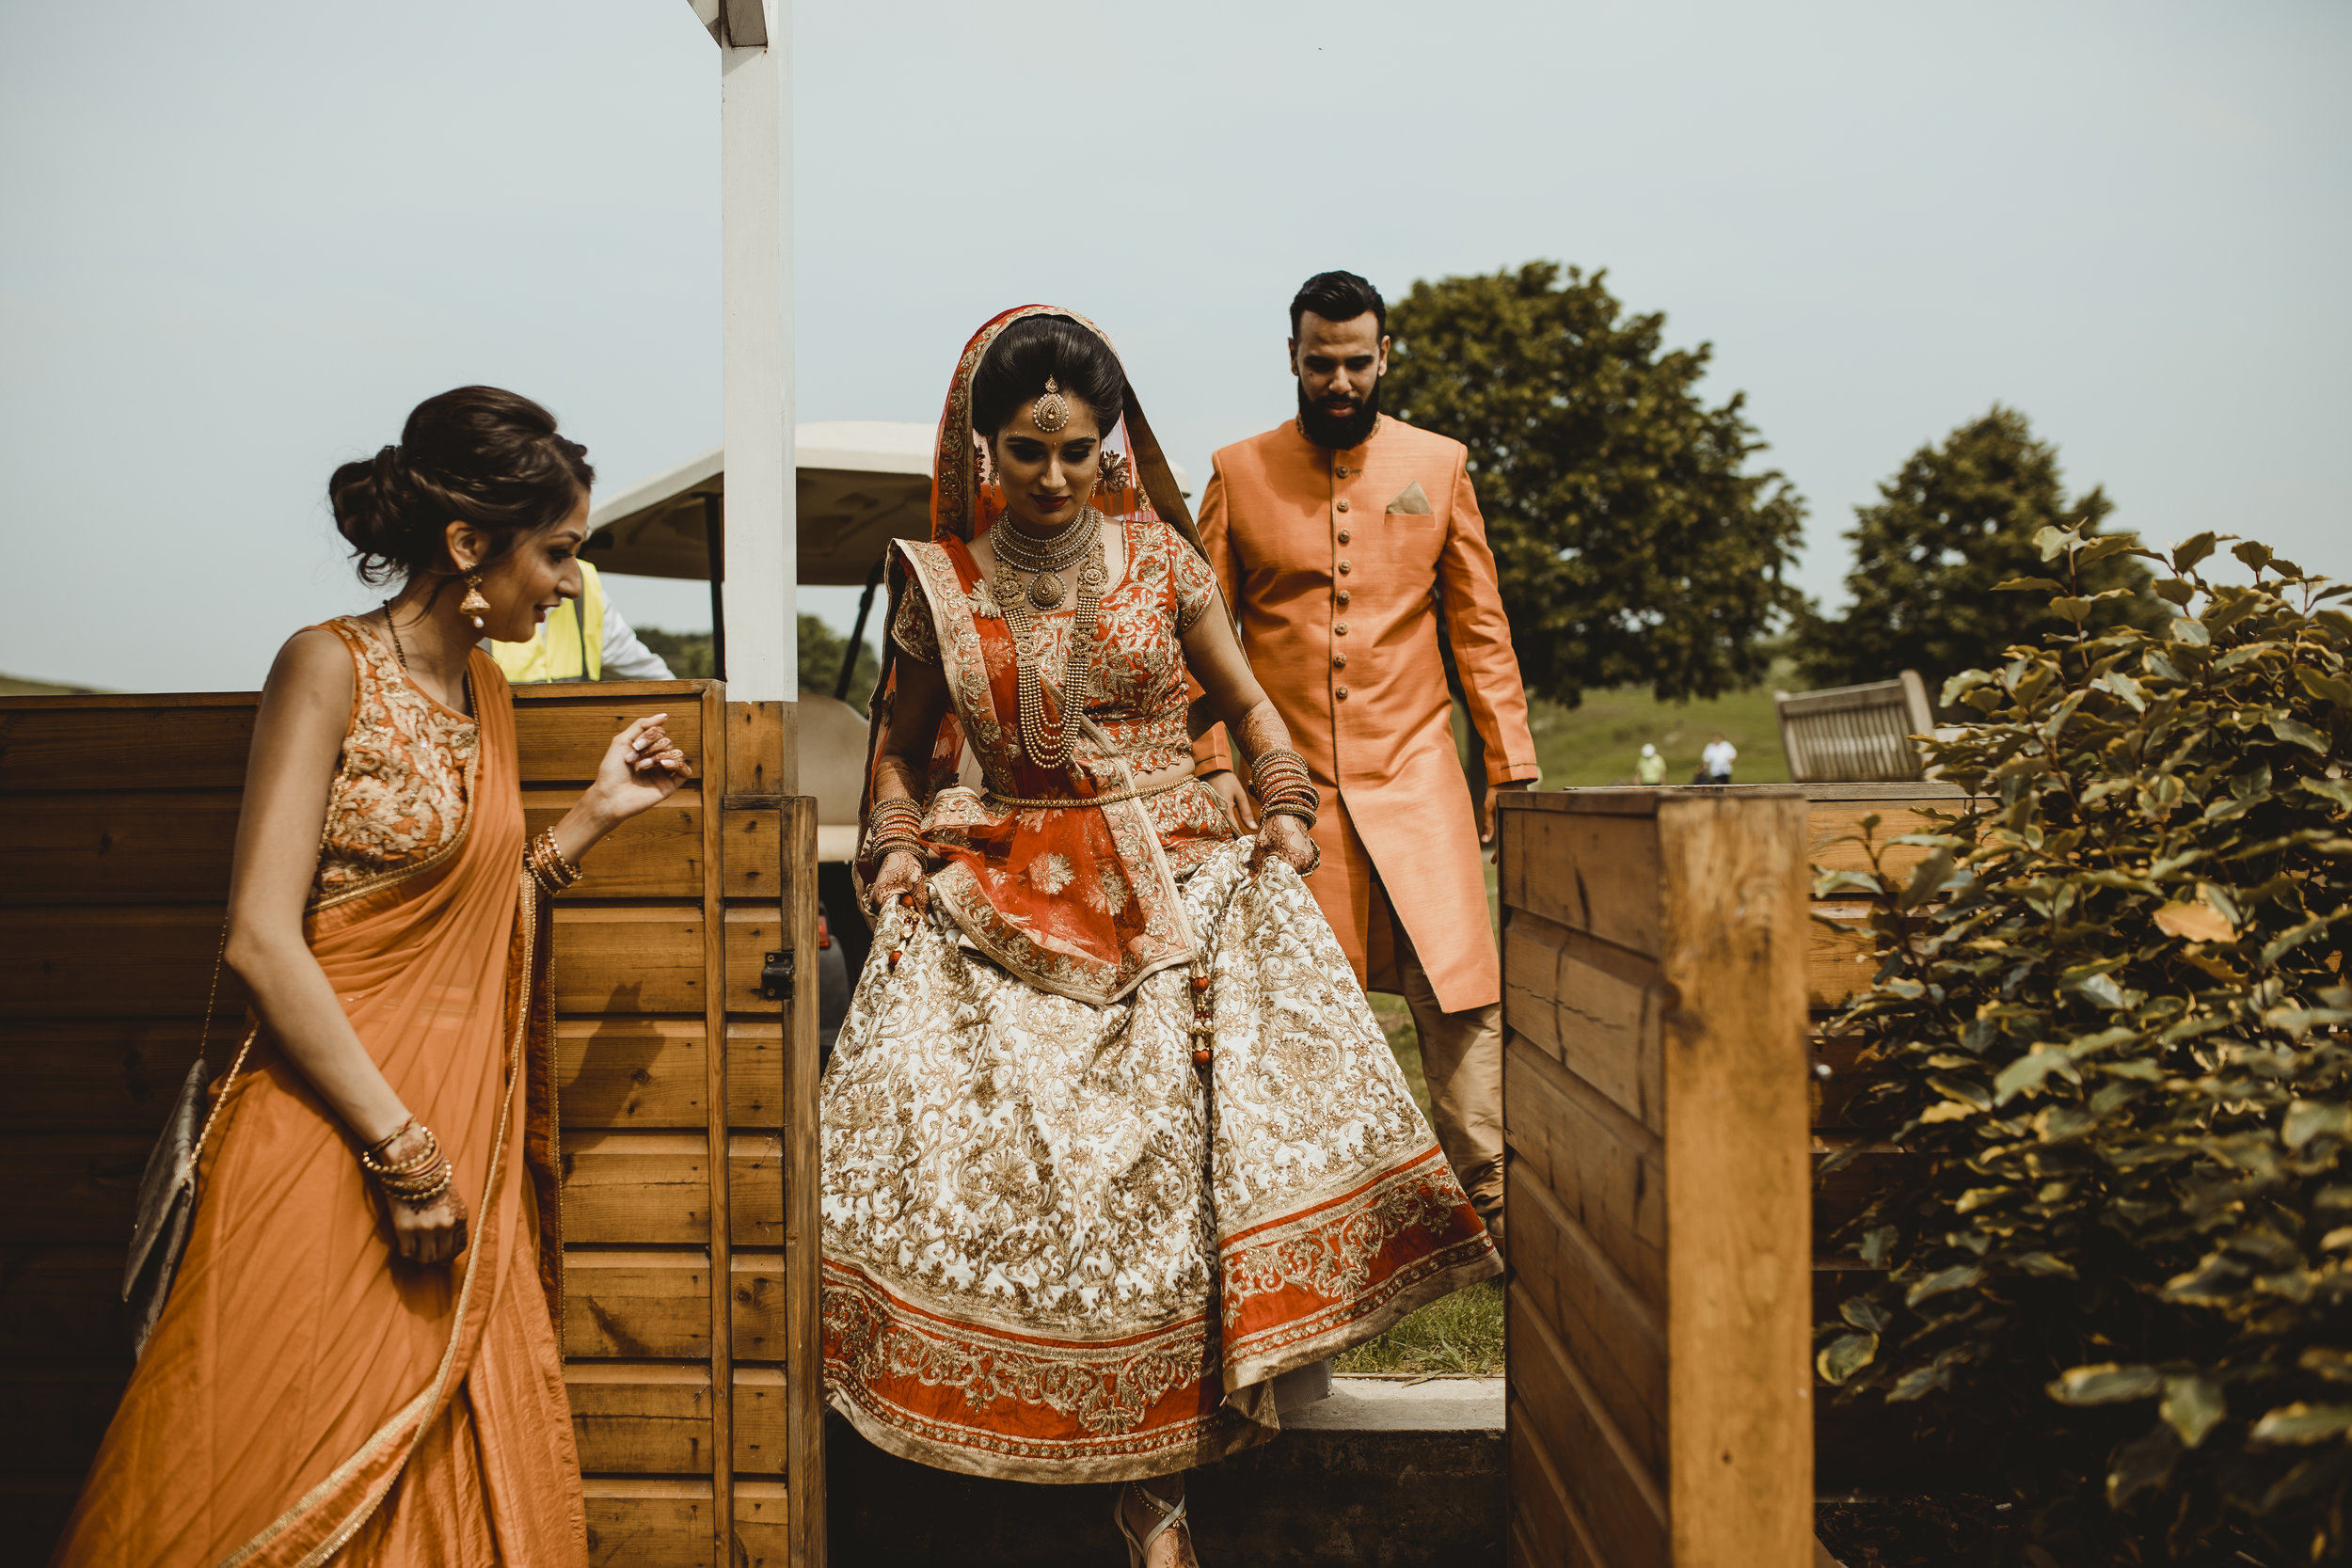 N&J_MILTON_KEYNES_WEDDING_LONDON_PHOTOGRAPHER_ASIAN_WEDDING-454.JPG